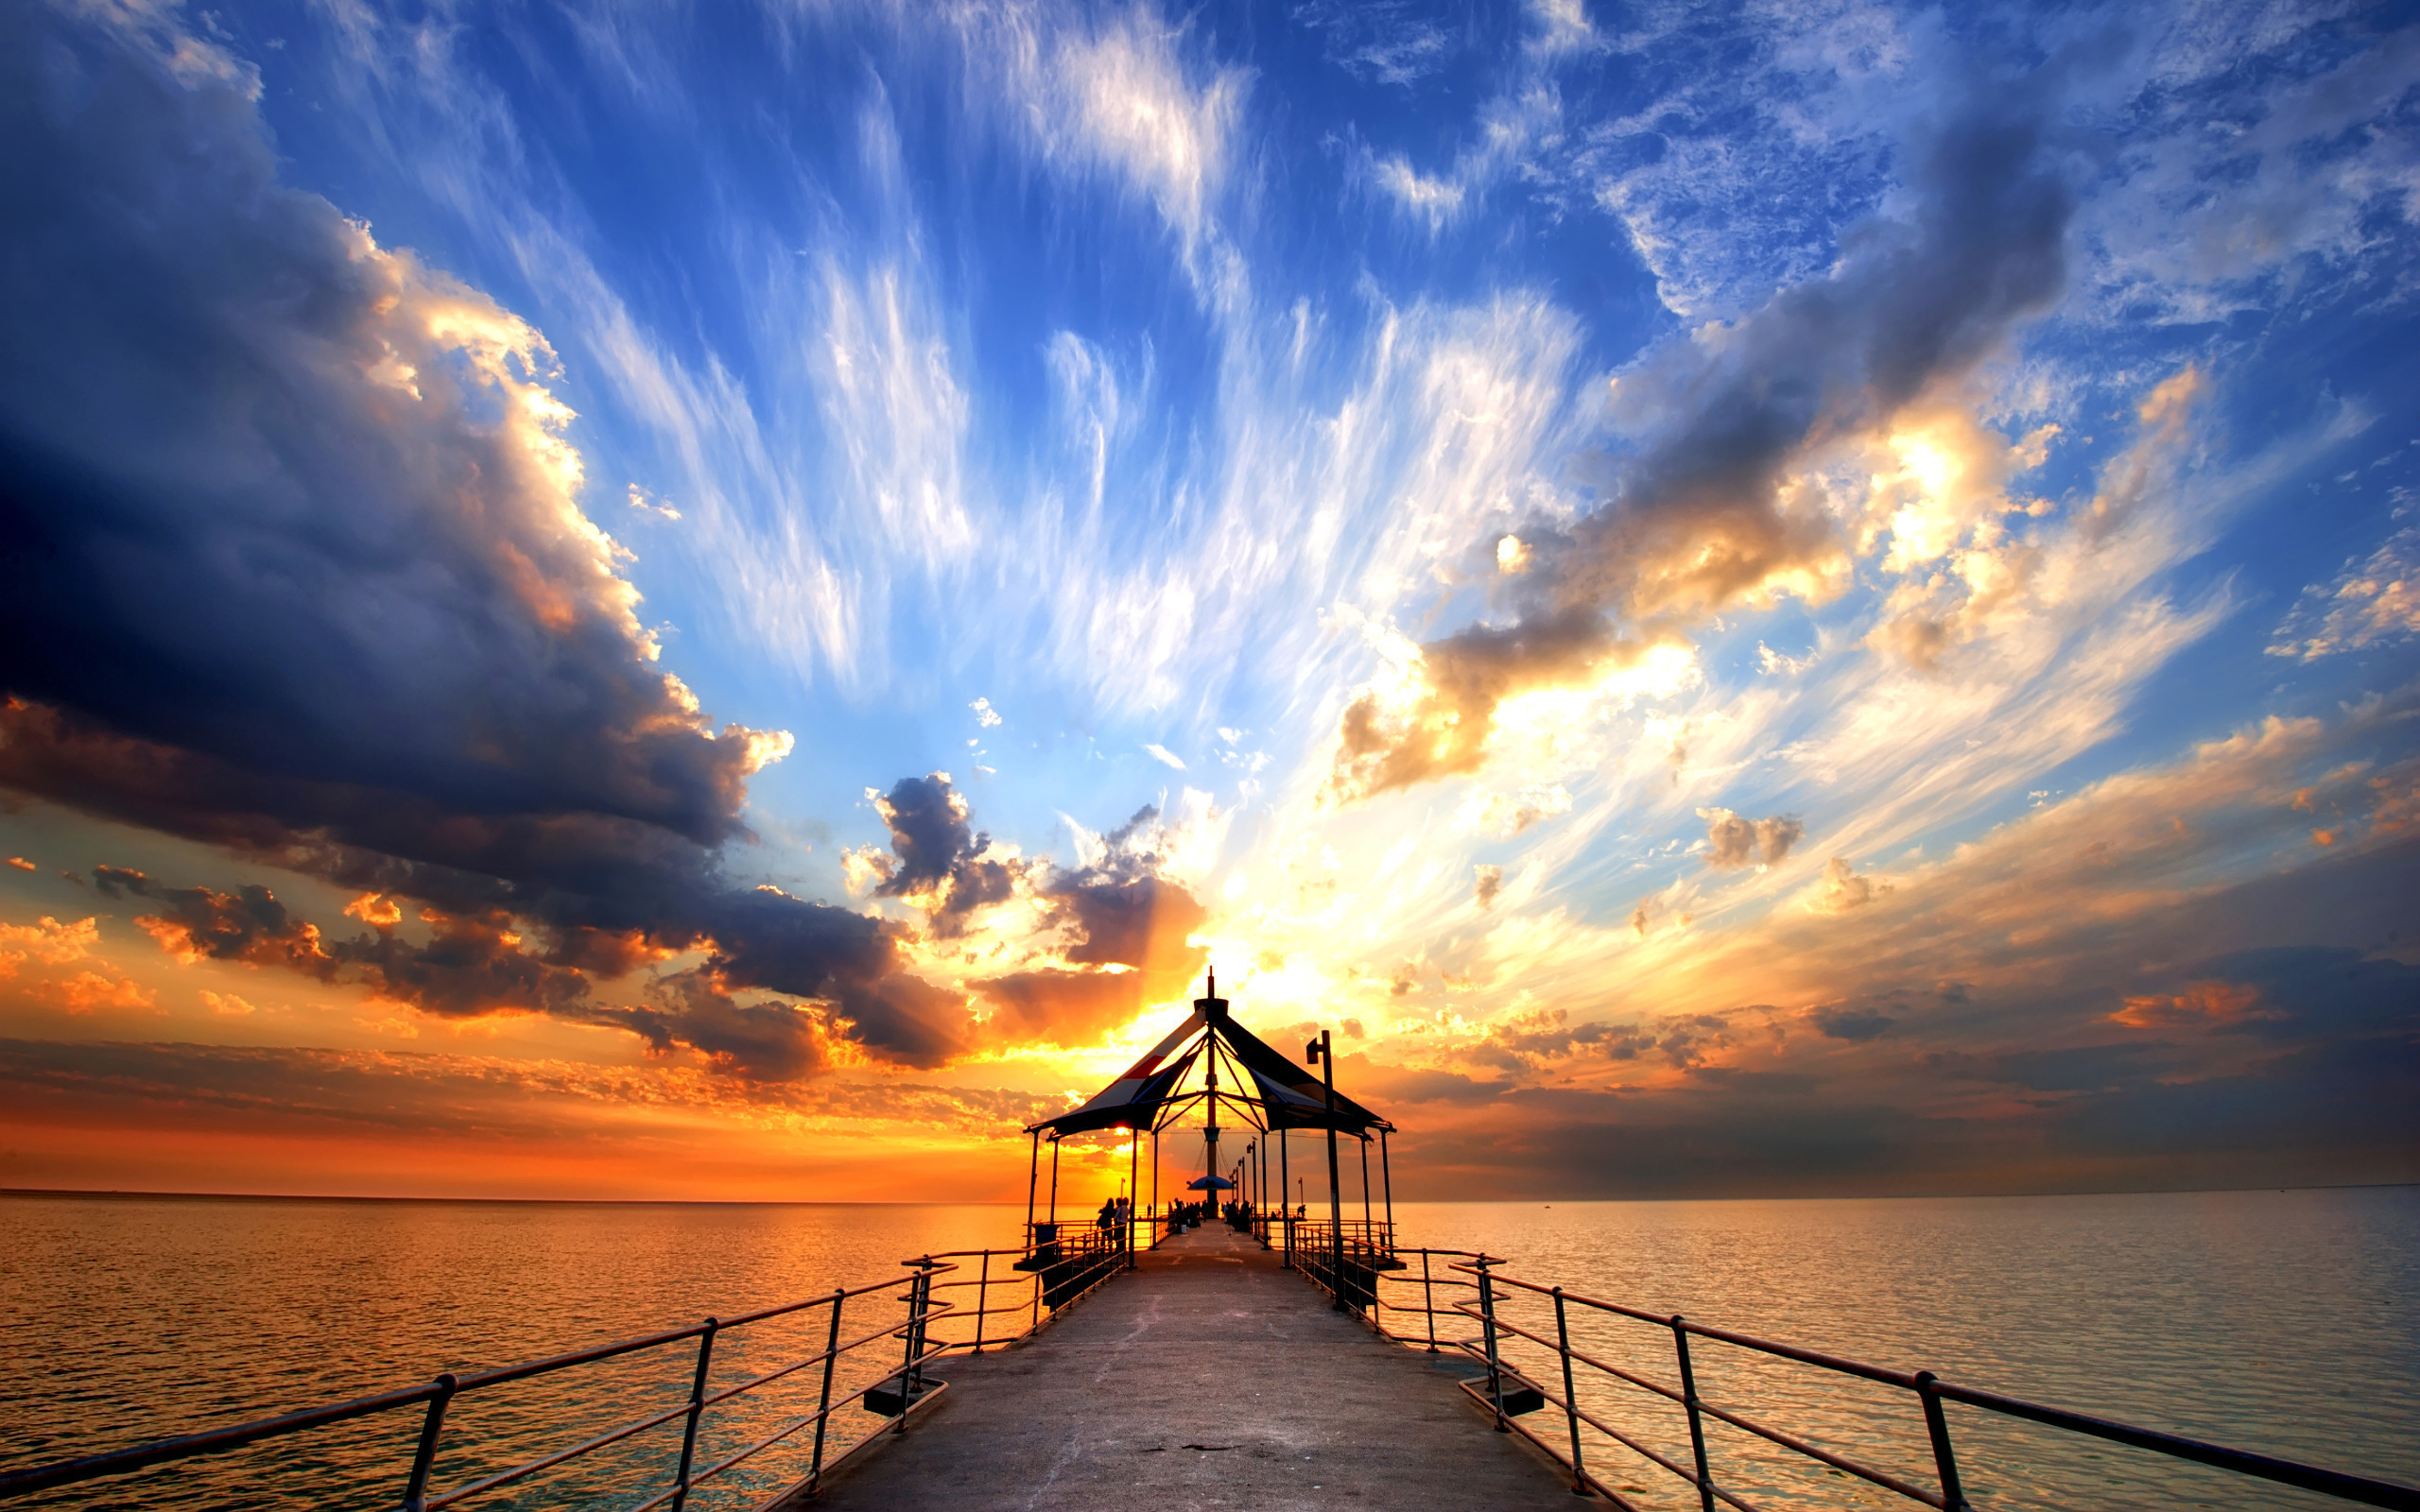 Pier At Dusk Sunrise HD Wallpaper 2560x1600